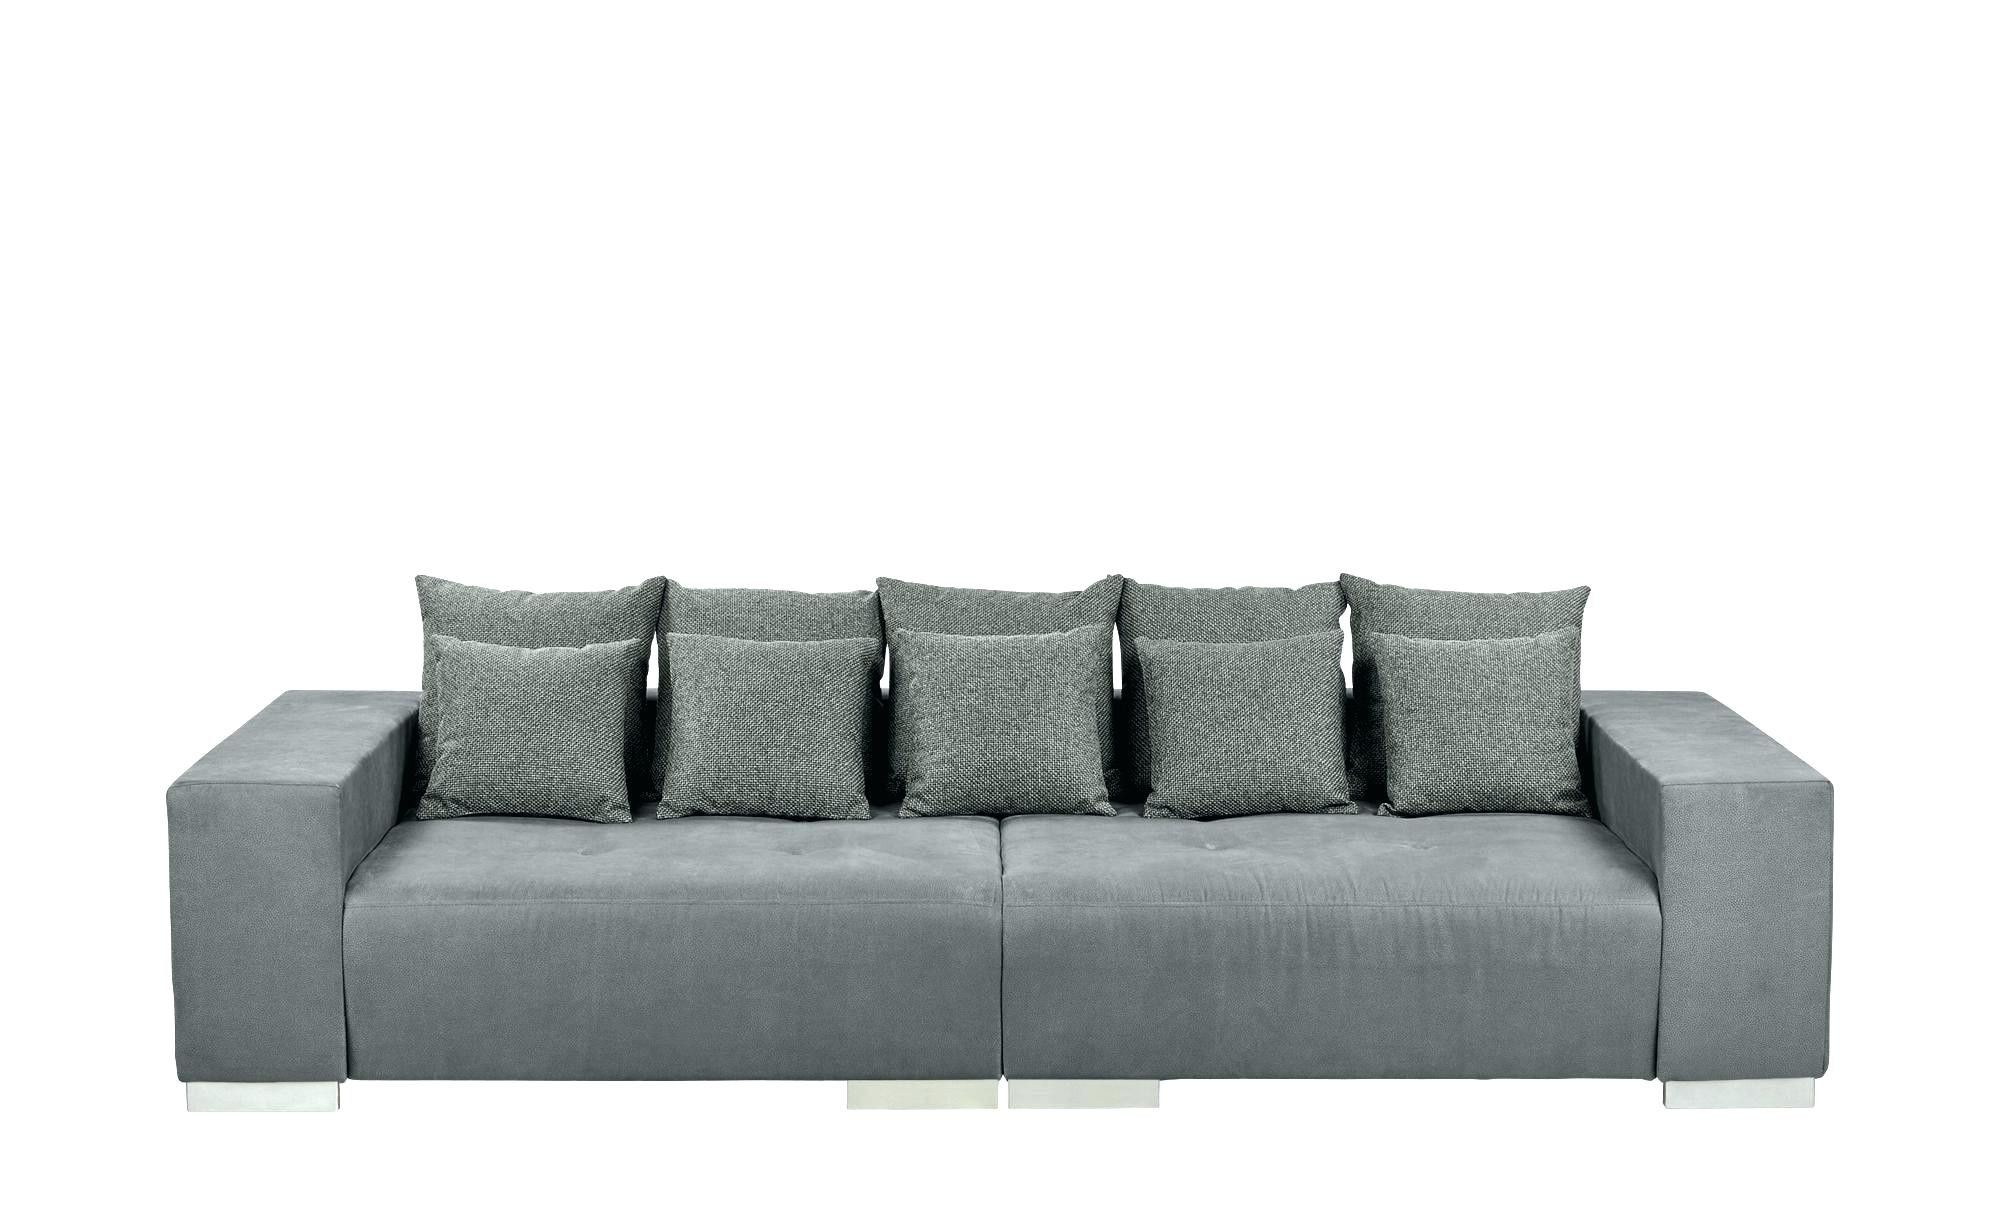 Outstanding Big Sofa Xxl Poco In 2020 Big Sofas Sofa Couch